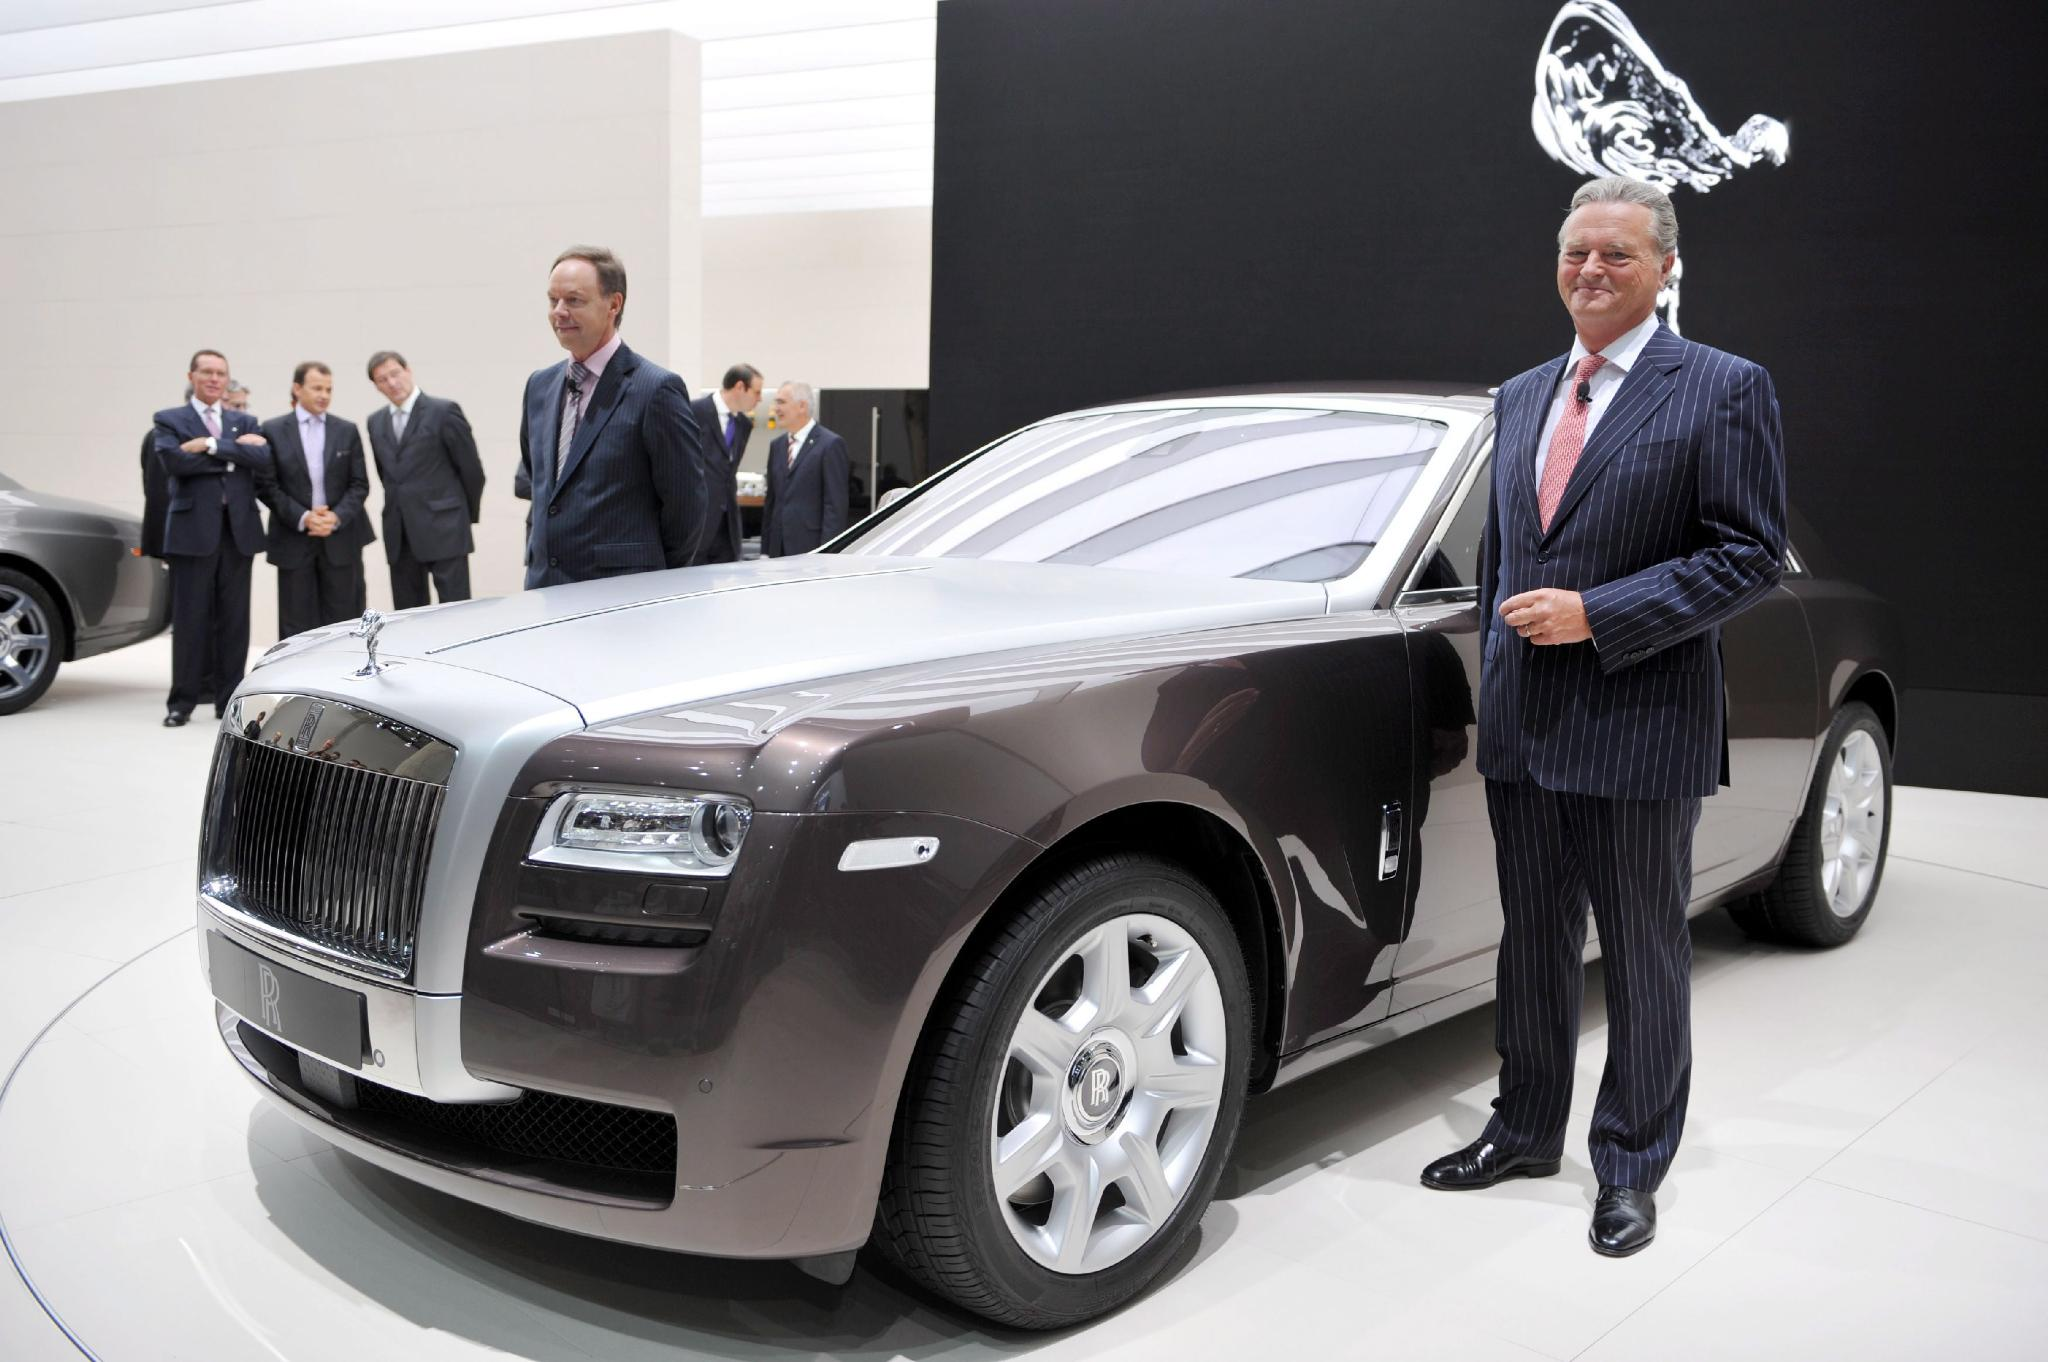 Tom Purves, chairman of Rolls Royce presented the new Ghost